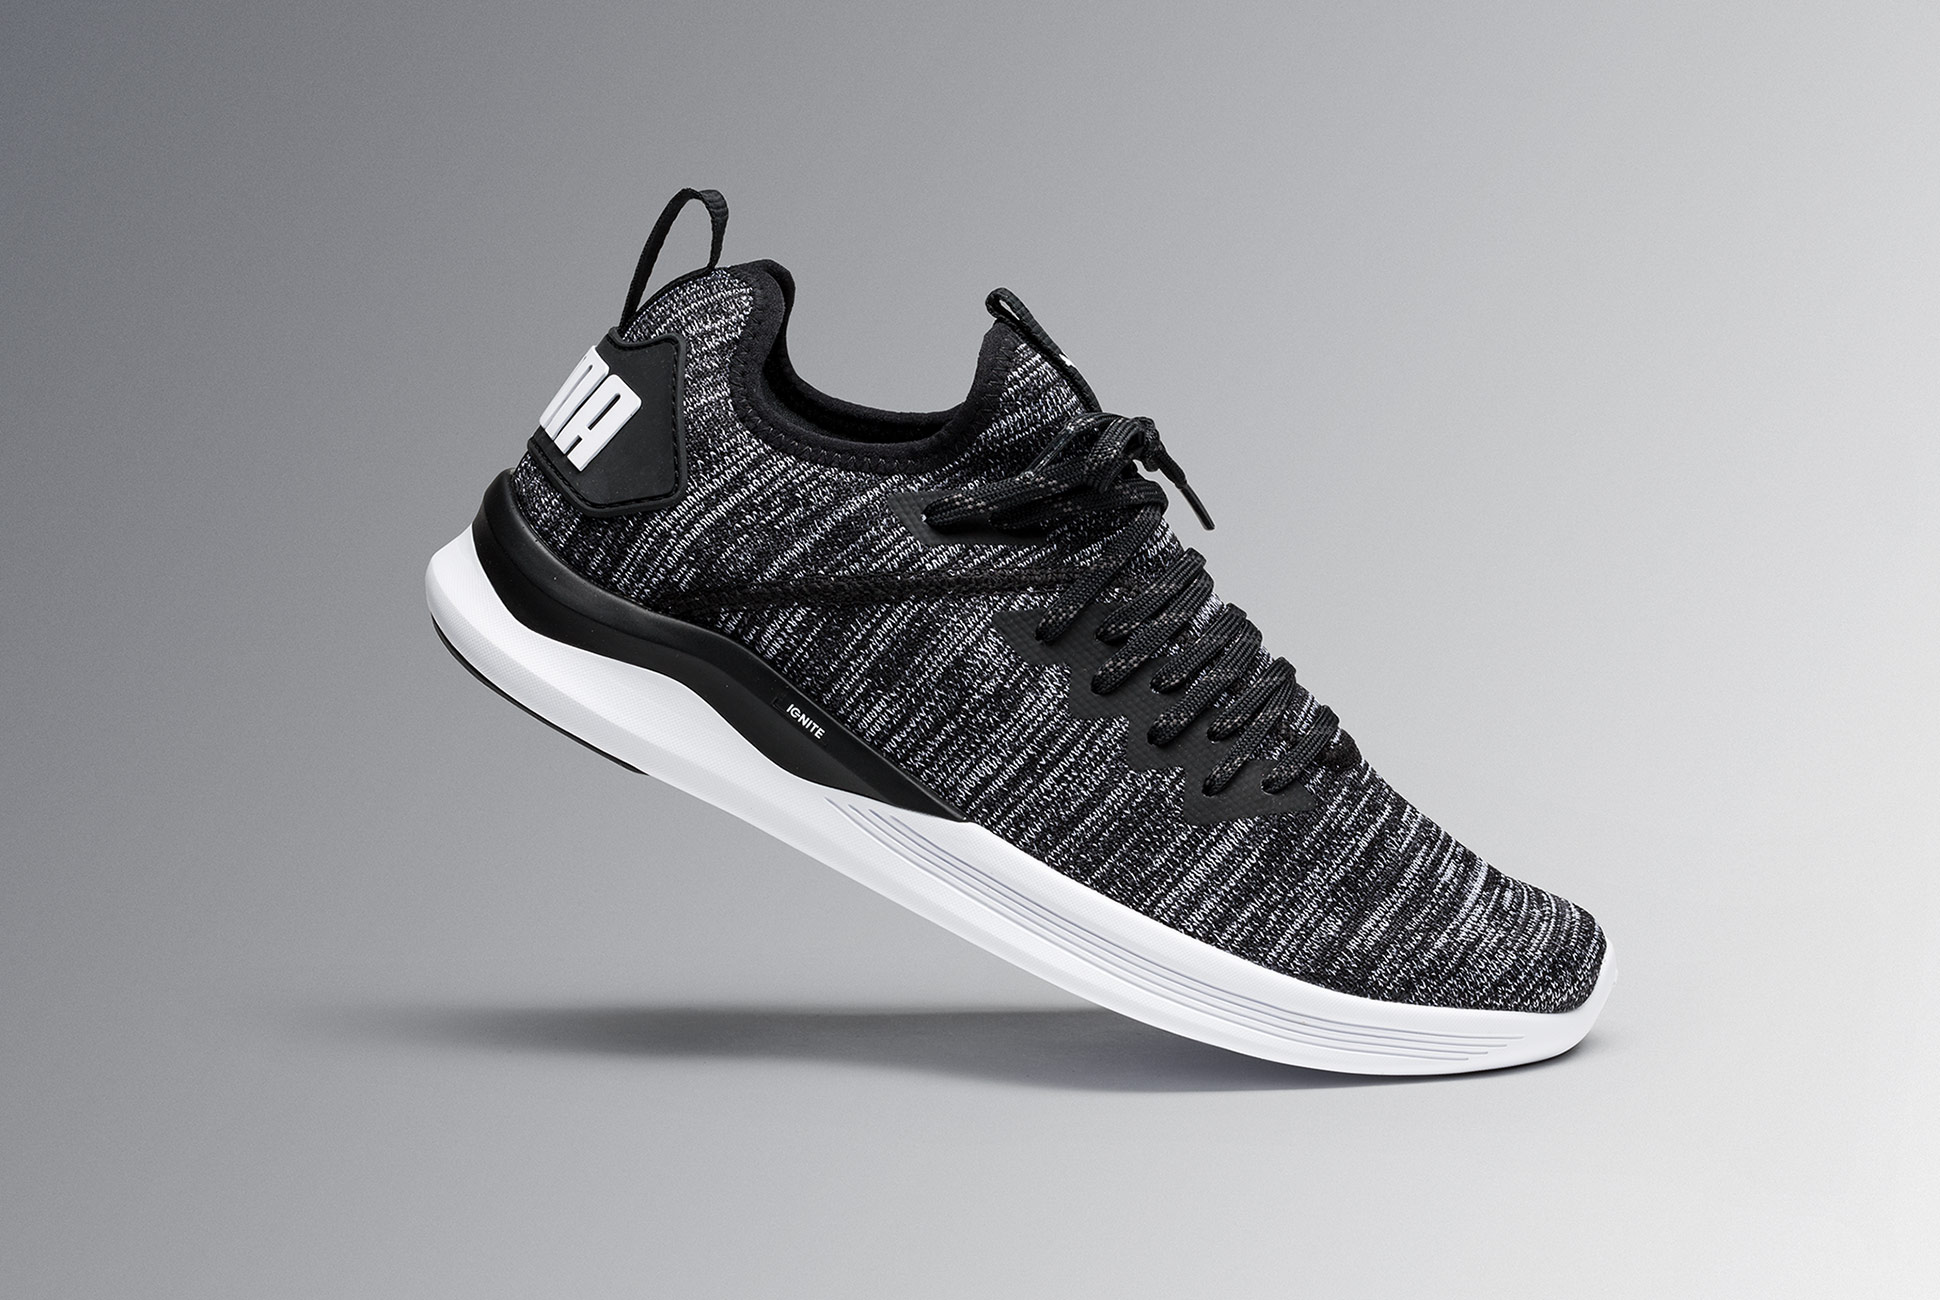 a92bb6b79 6 Alternatives To Yeezy Sneakers - LikesnTrends.com